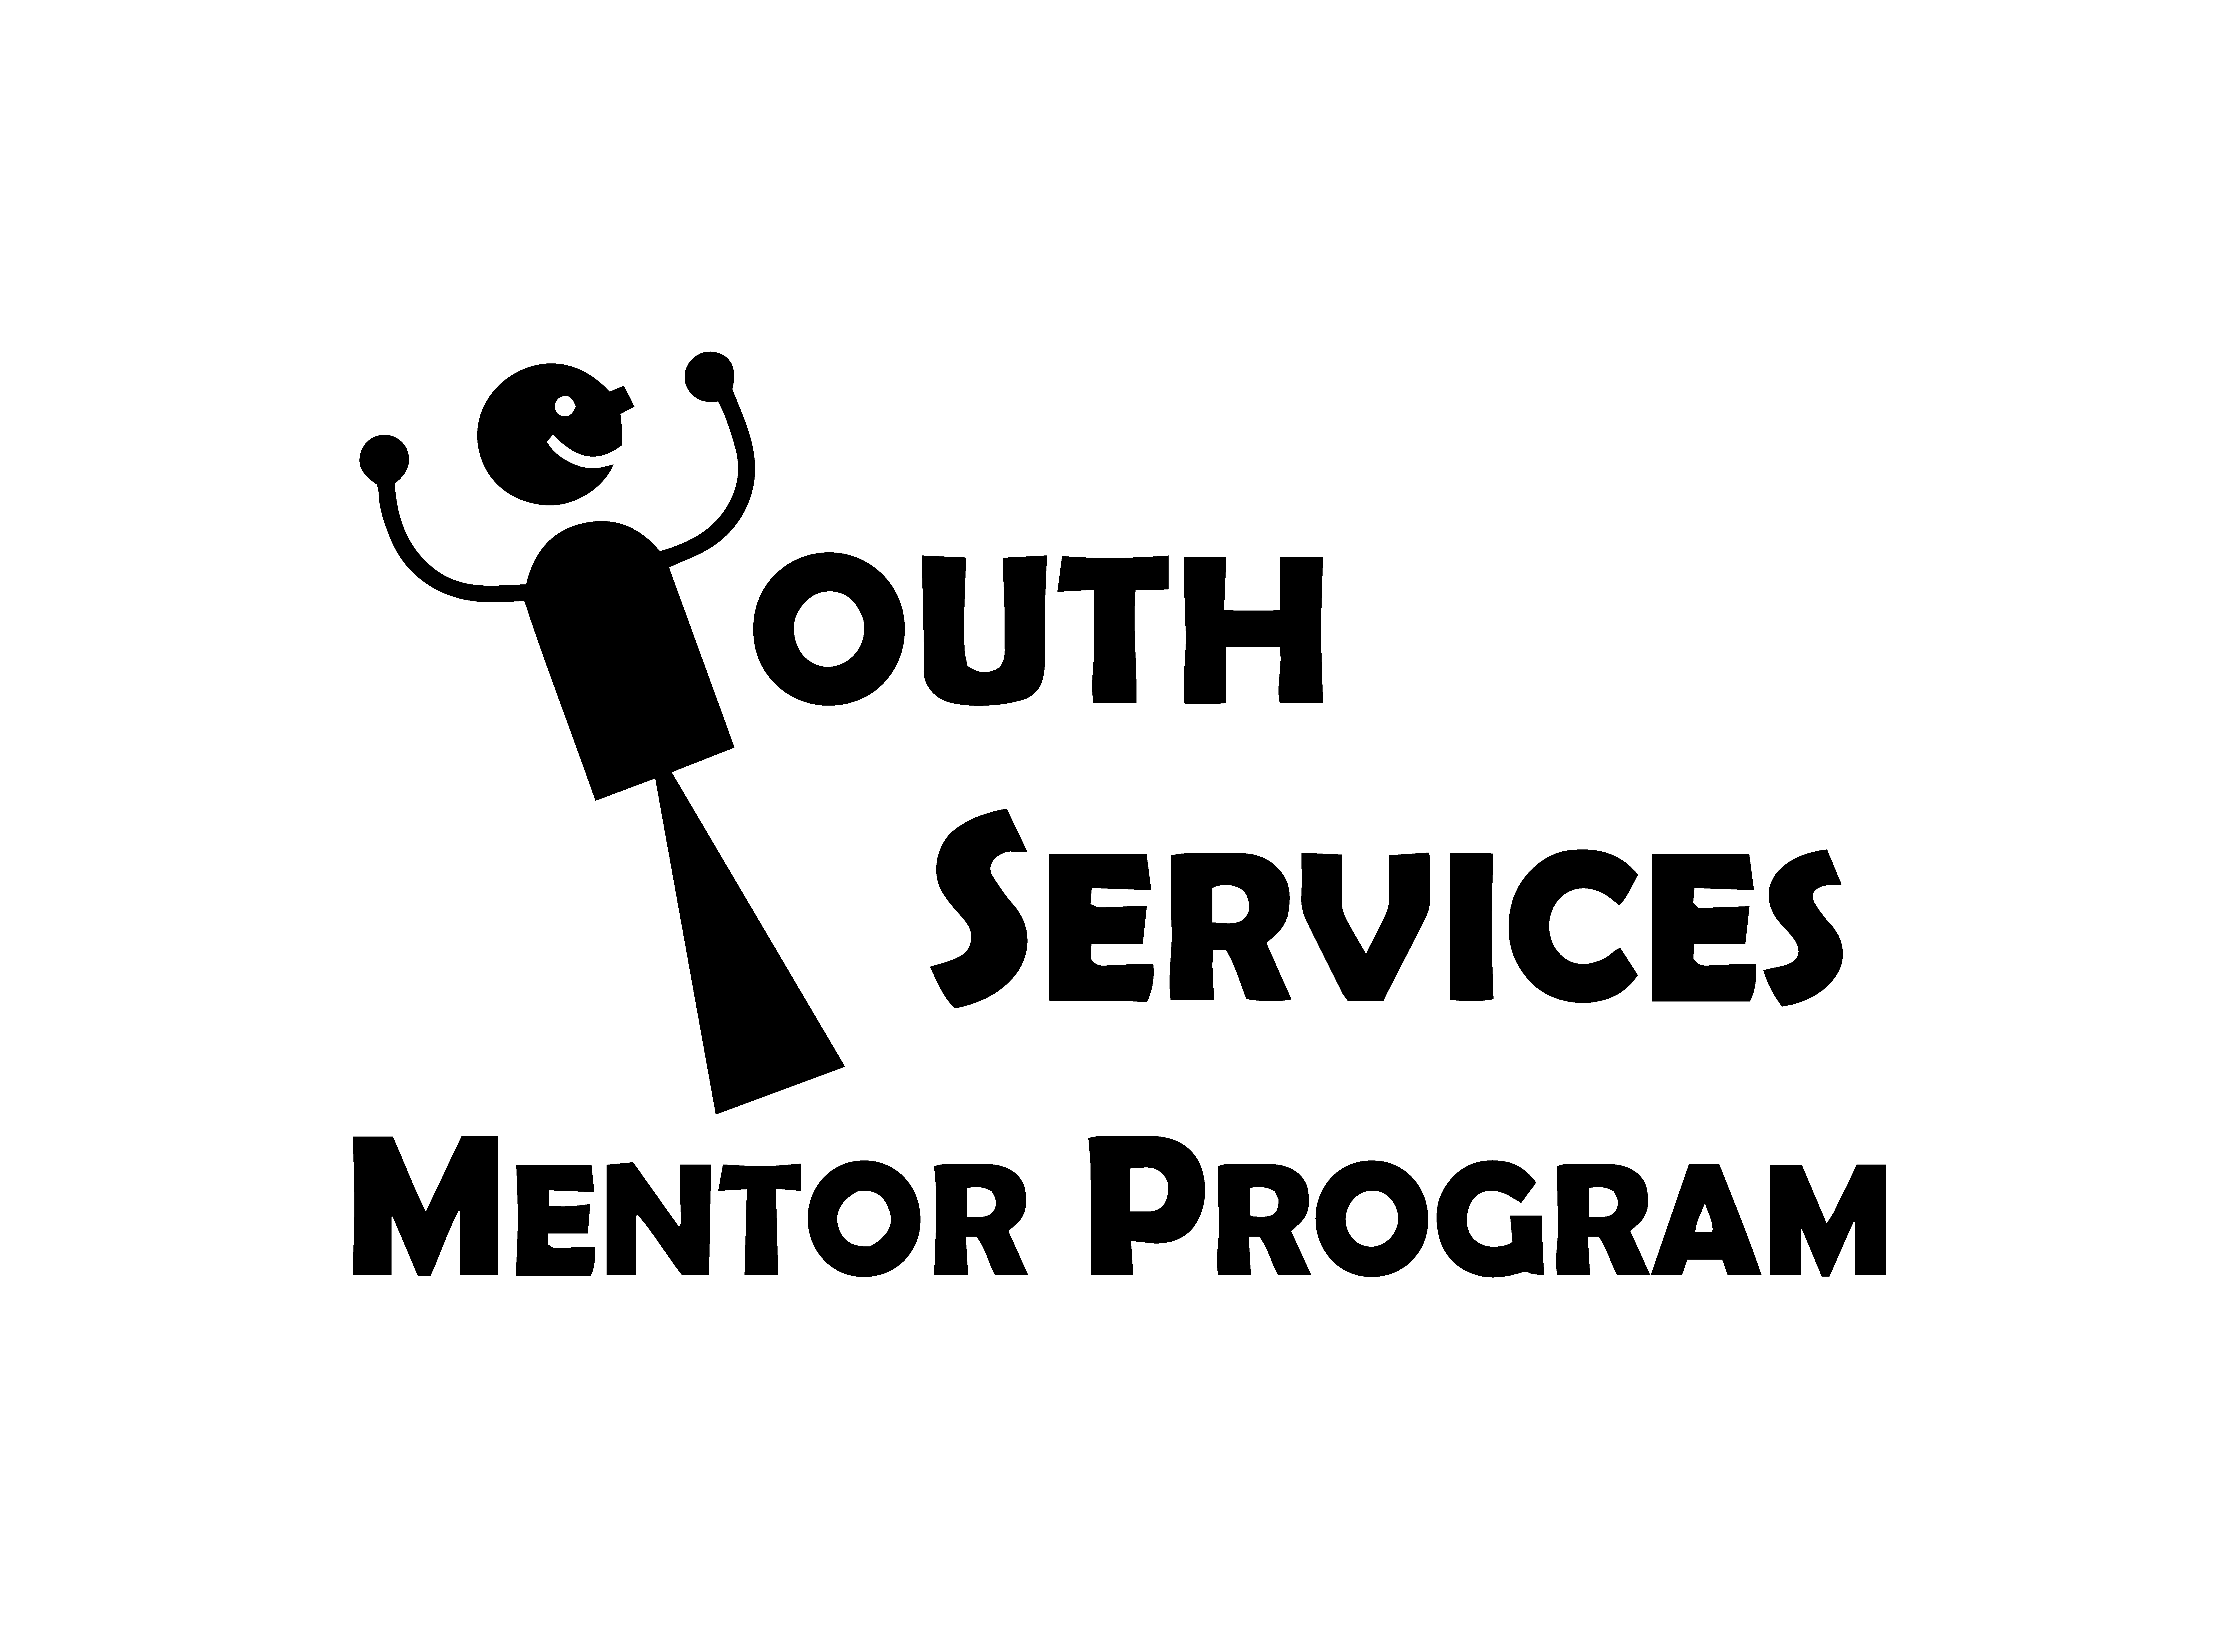 Youth Services Mentor Program